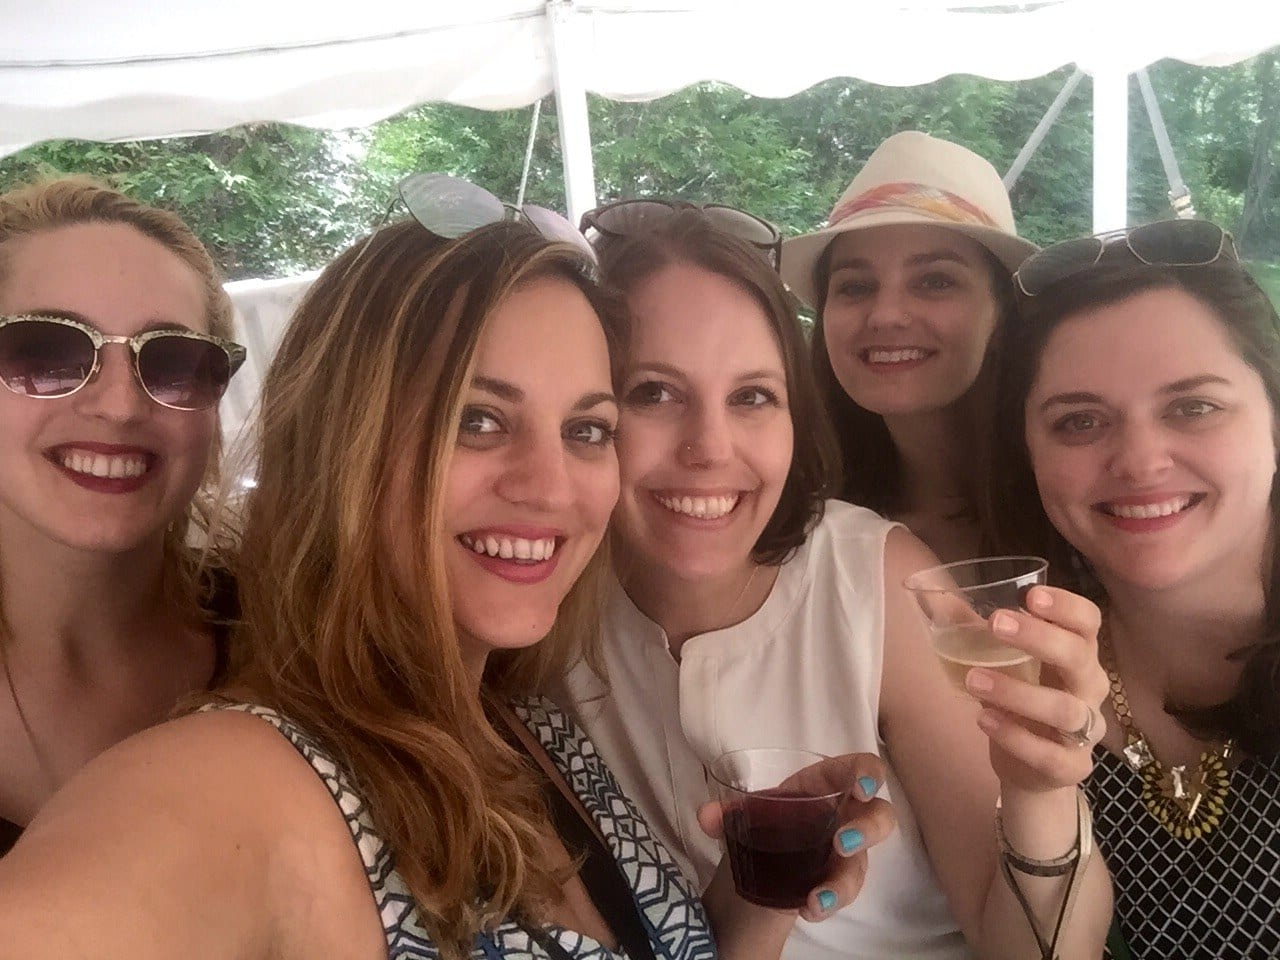 Sarah, Kate, Beth, Amy and Colleen in Long Island